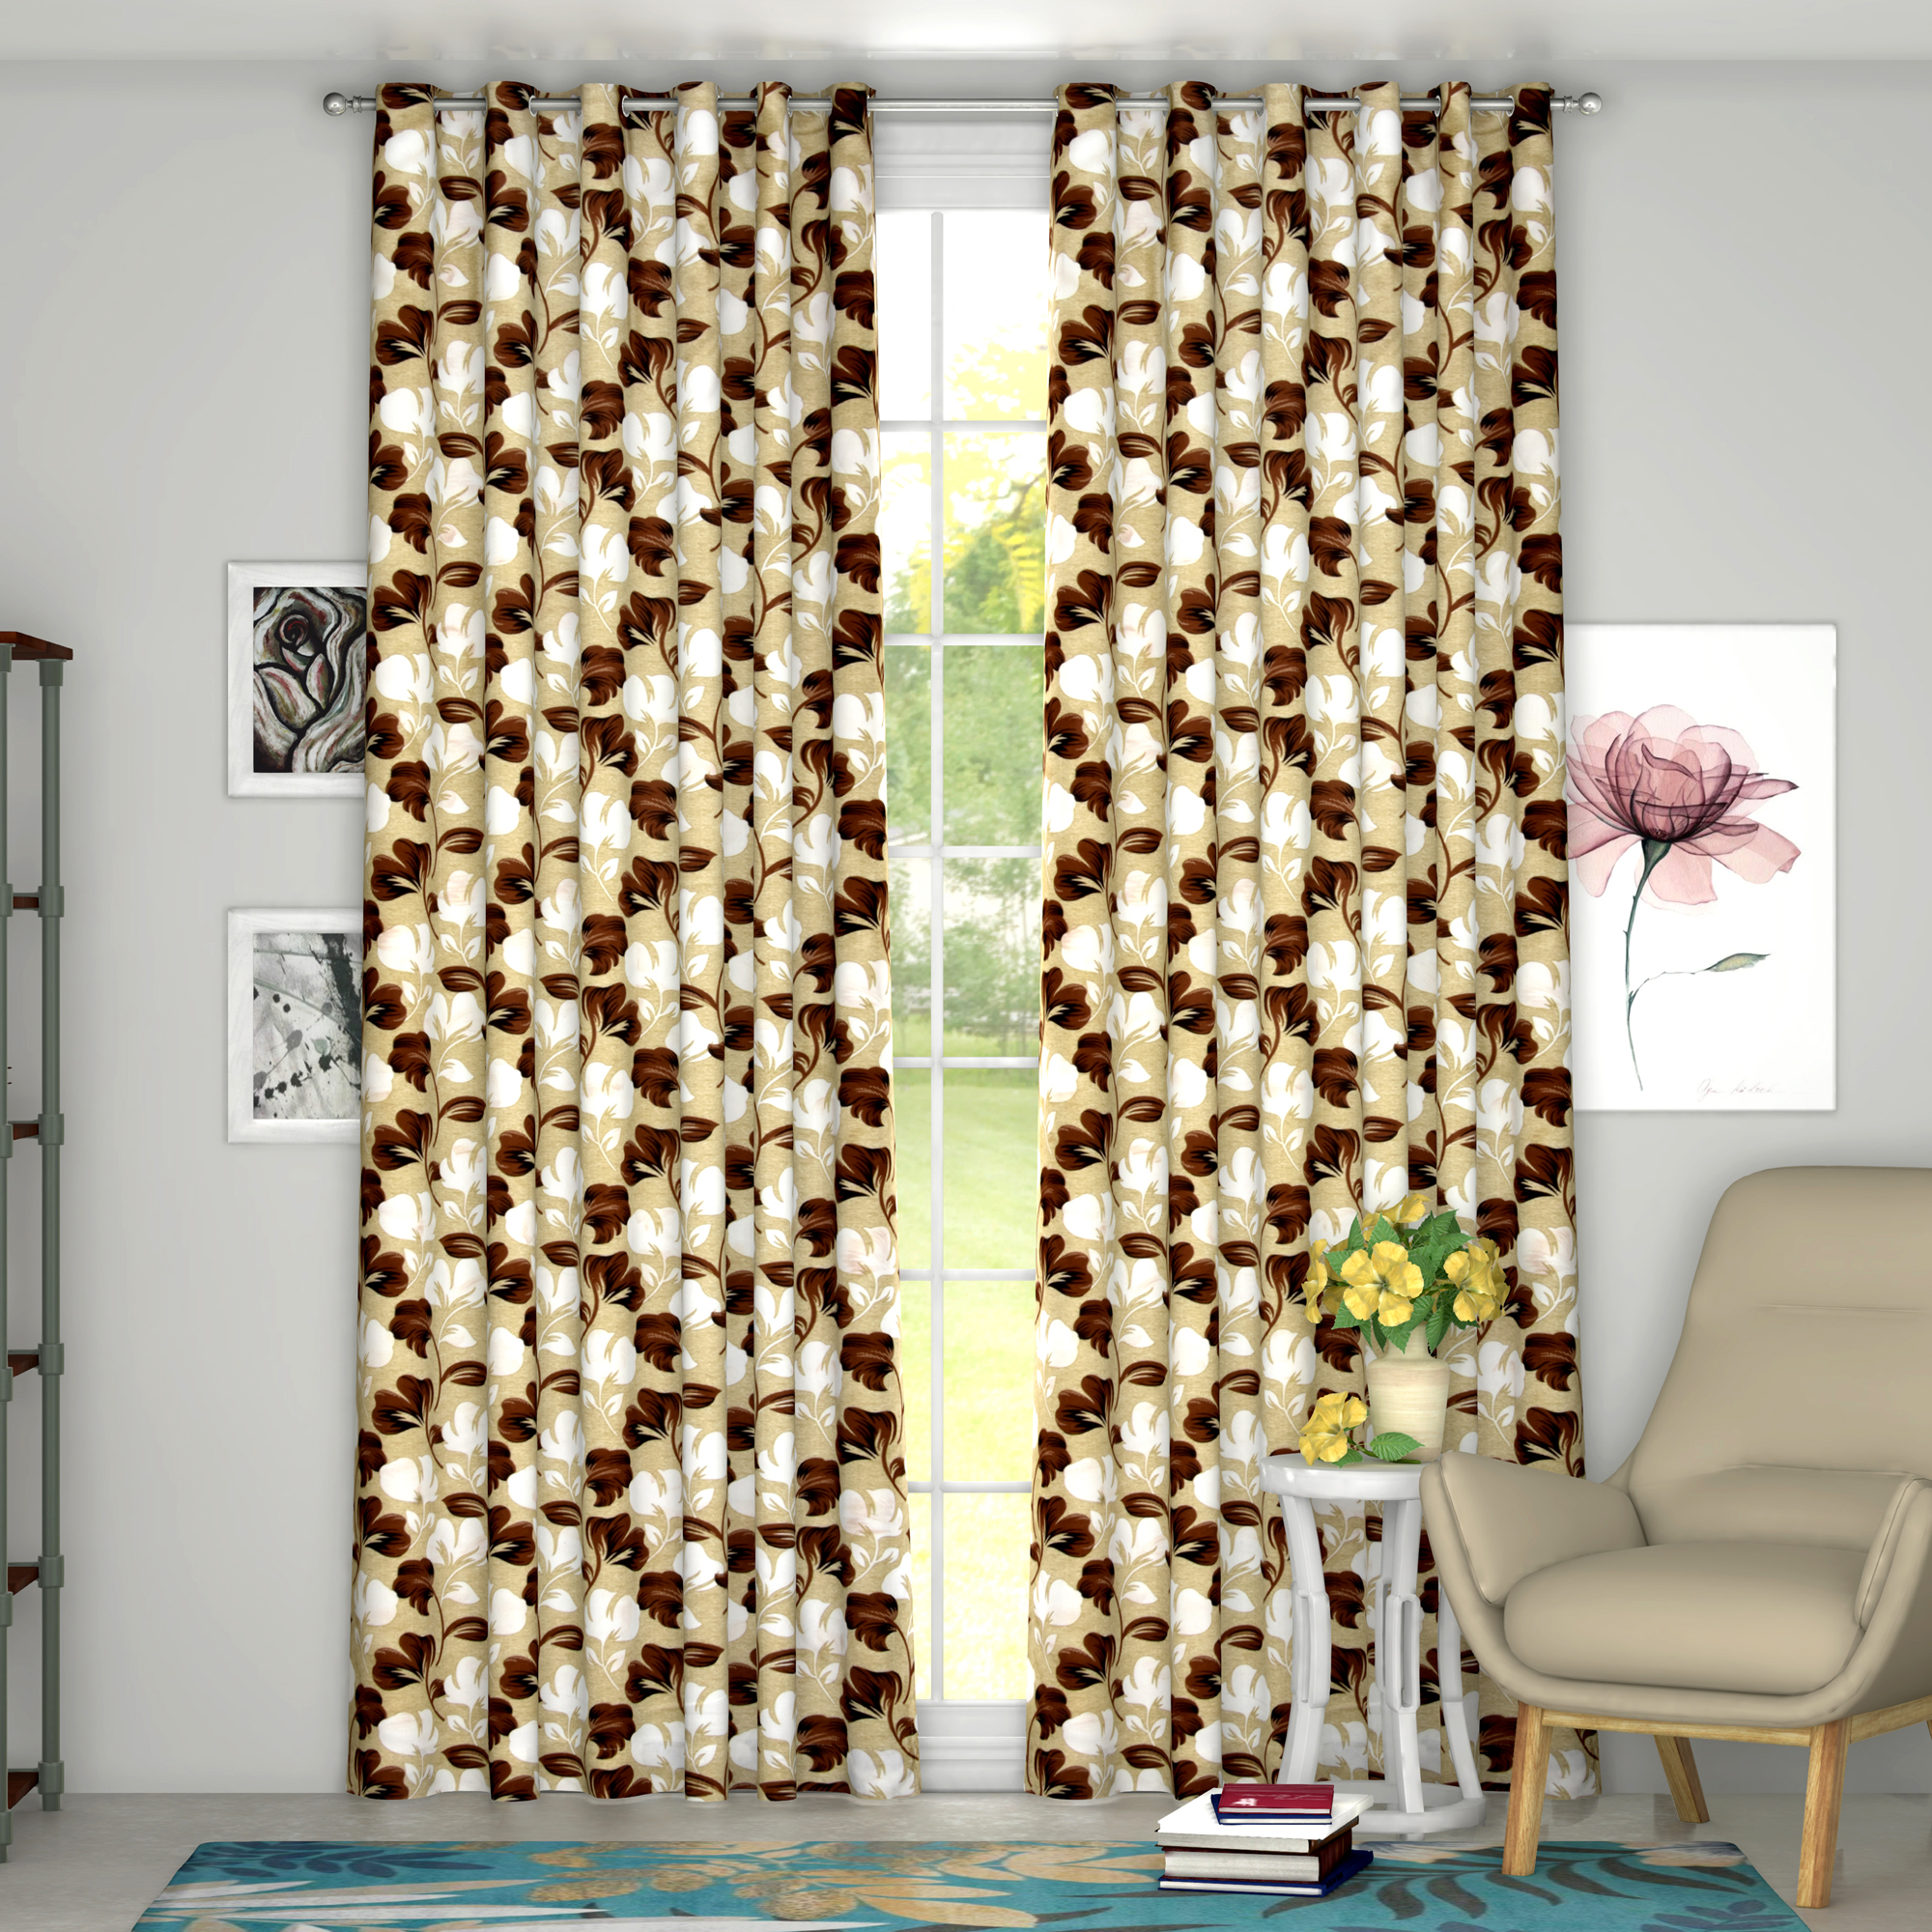 Kuber Industries Leaf Print 2 Pieces Patio Sliding Door Curtain - Keep Warm Draperies, Sliding Glass Door Drapes,7 Feet (Green)